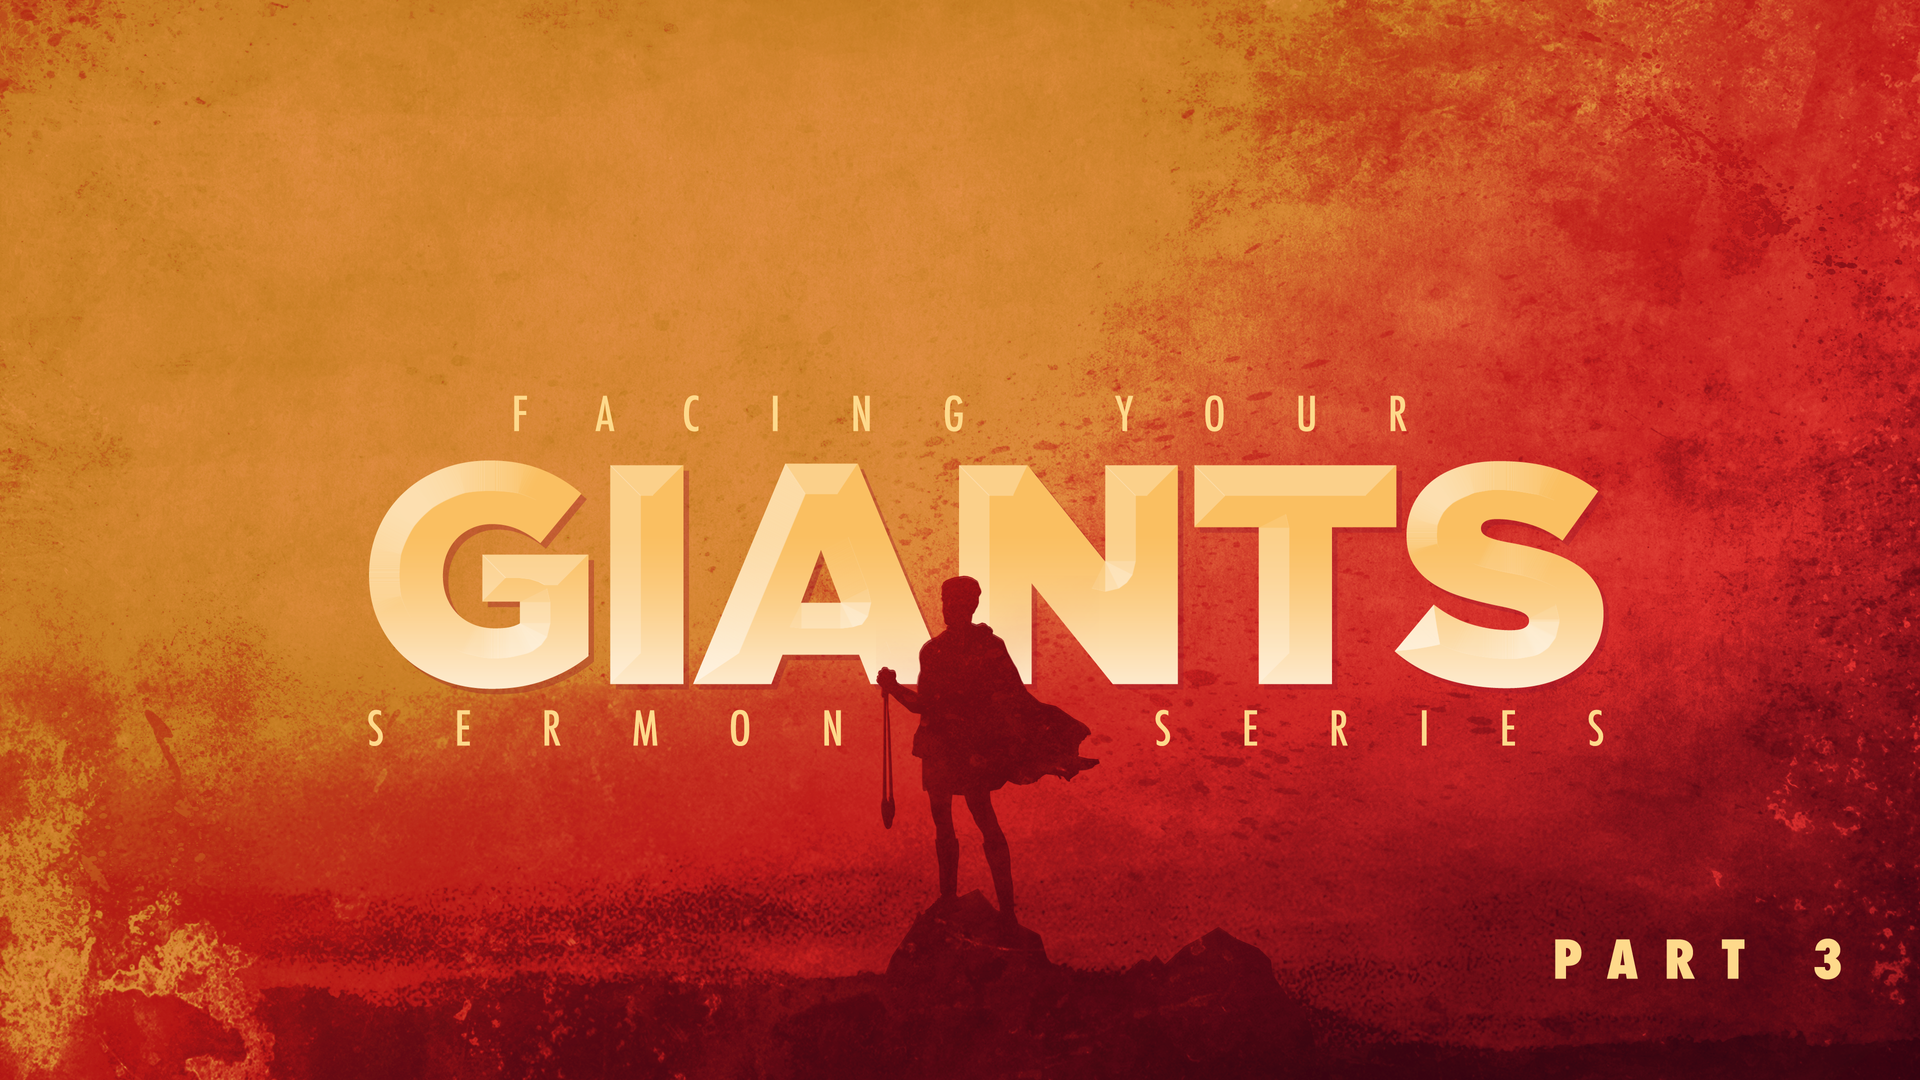 Facing Your Giants (Part 3)